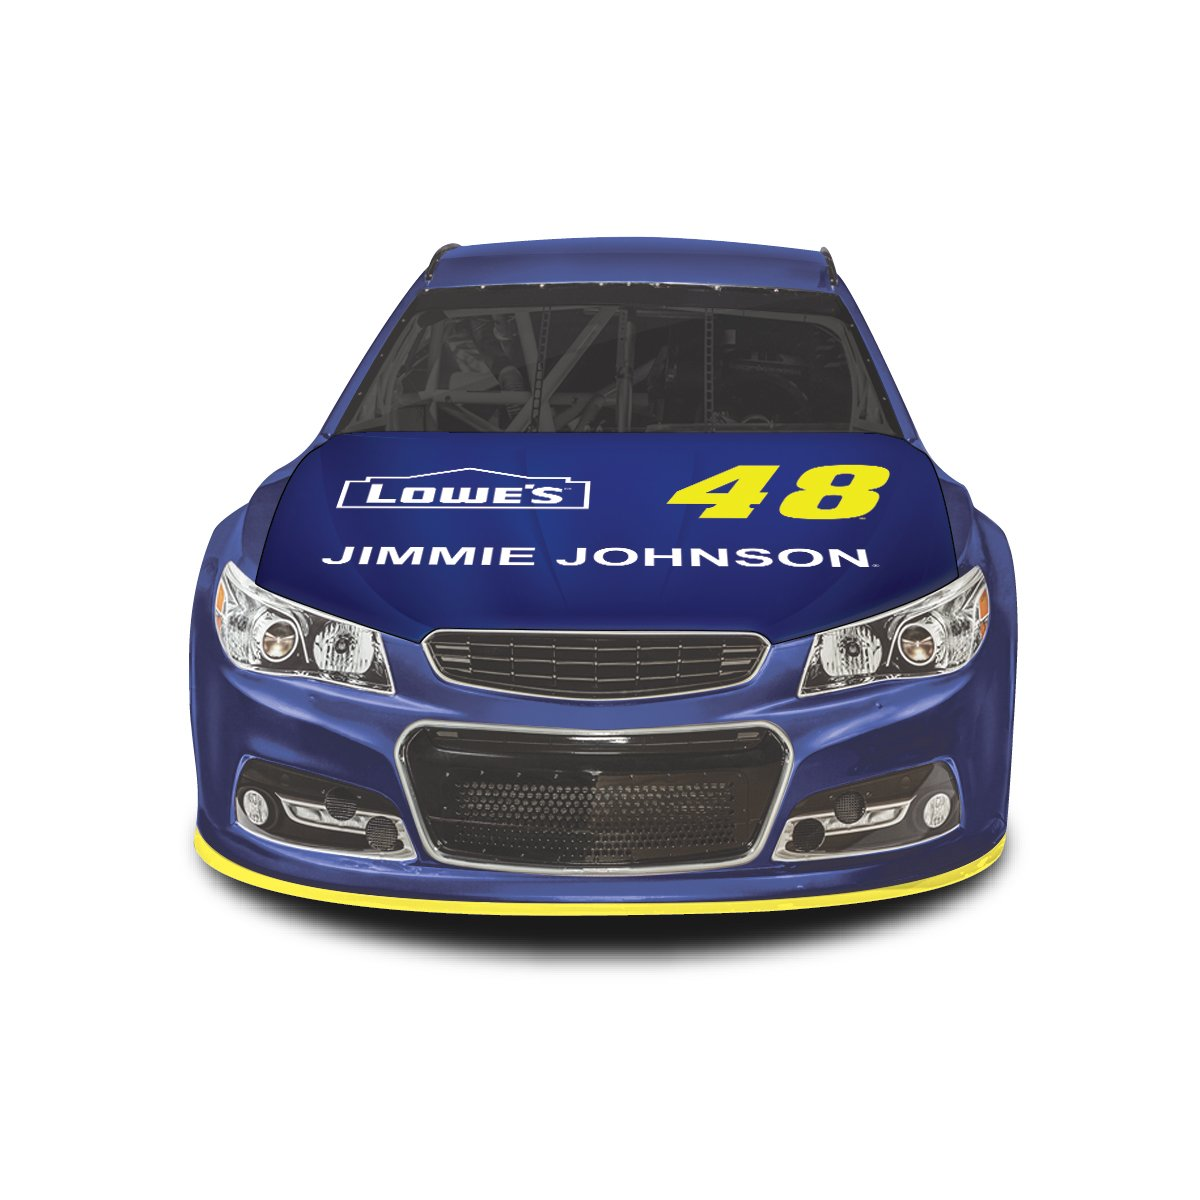 NASCAR Car Hood Cover #48 Jimmie Johnson Fits All Sizes